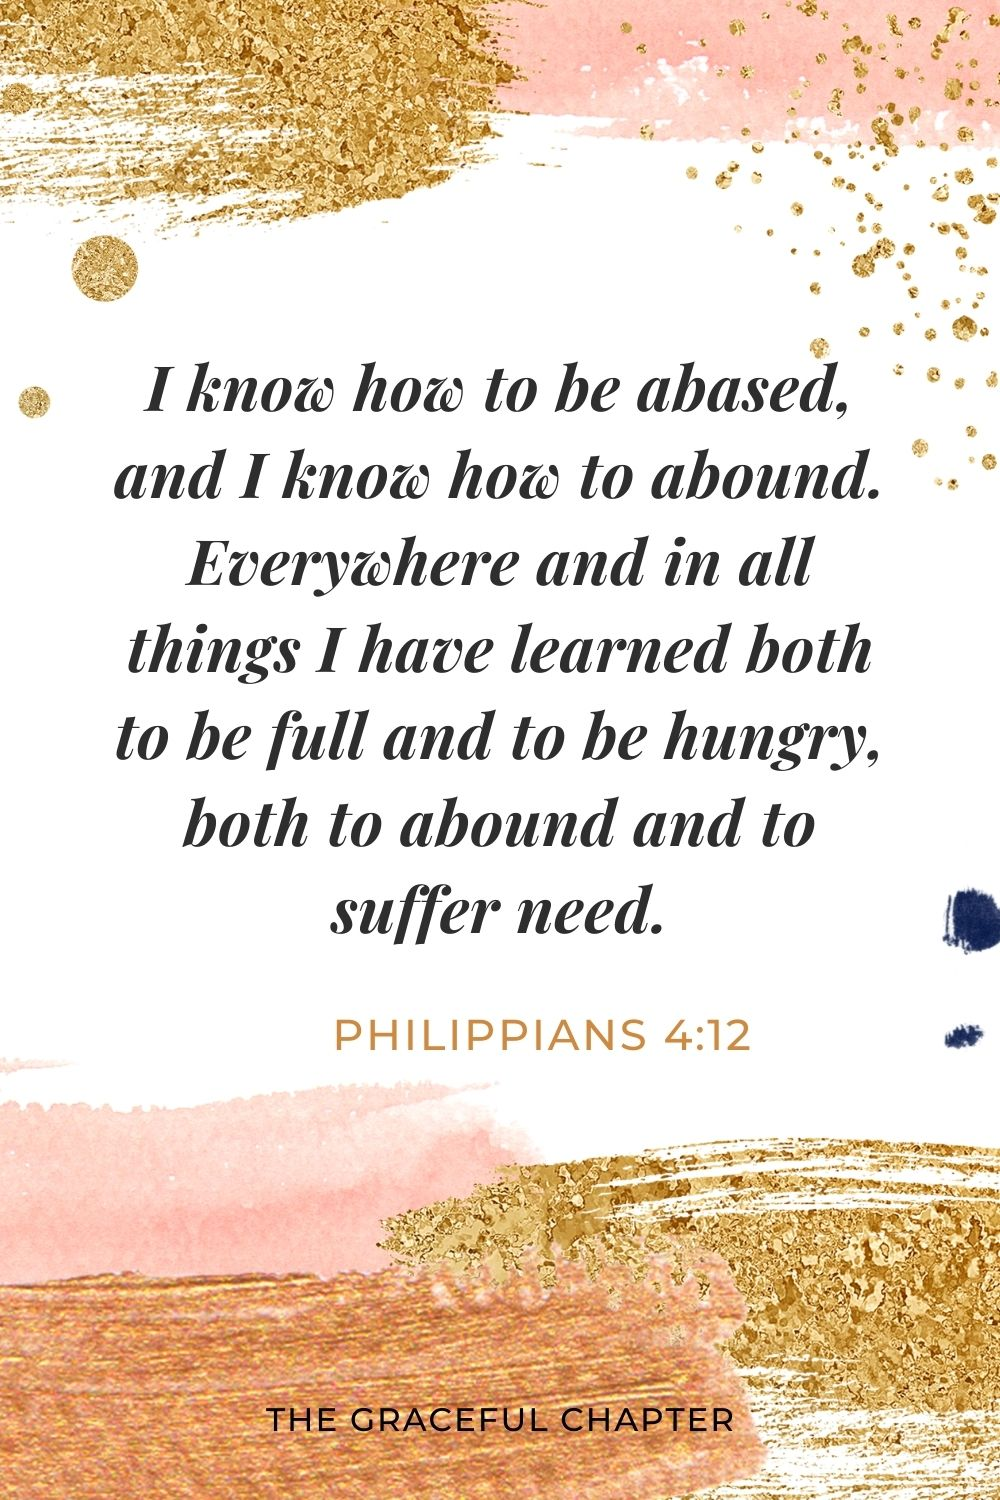 I know how to be abased, and I know how to abound. Everywhere and in all things I have learned both to be full and to be hungry, both to abound and to suffer need. Philippians 4:12